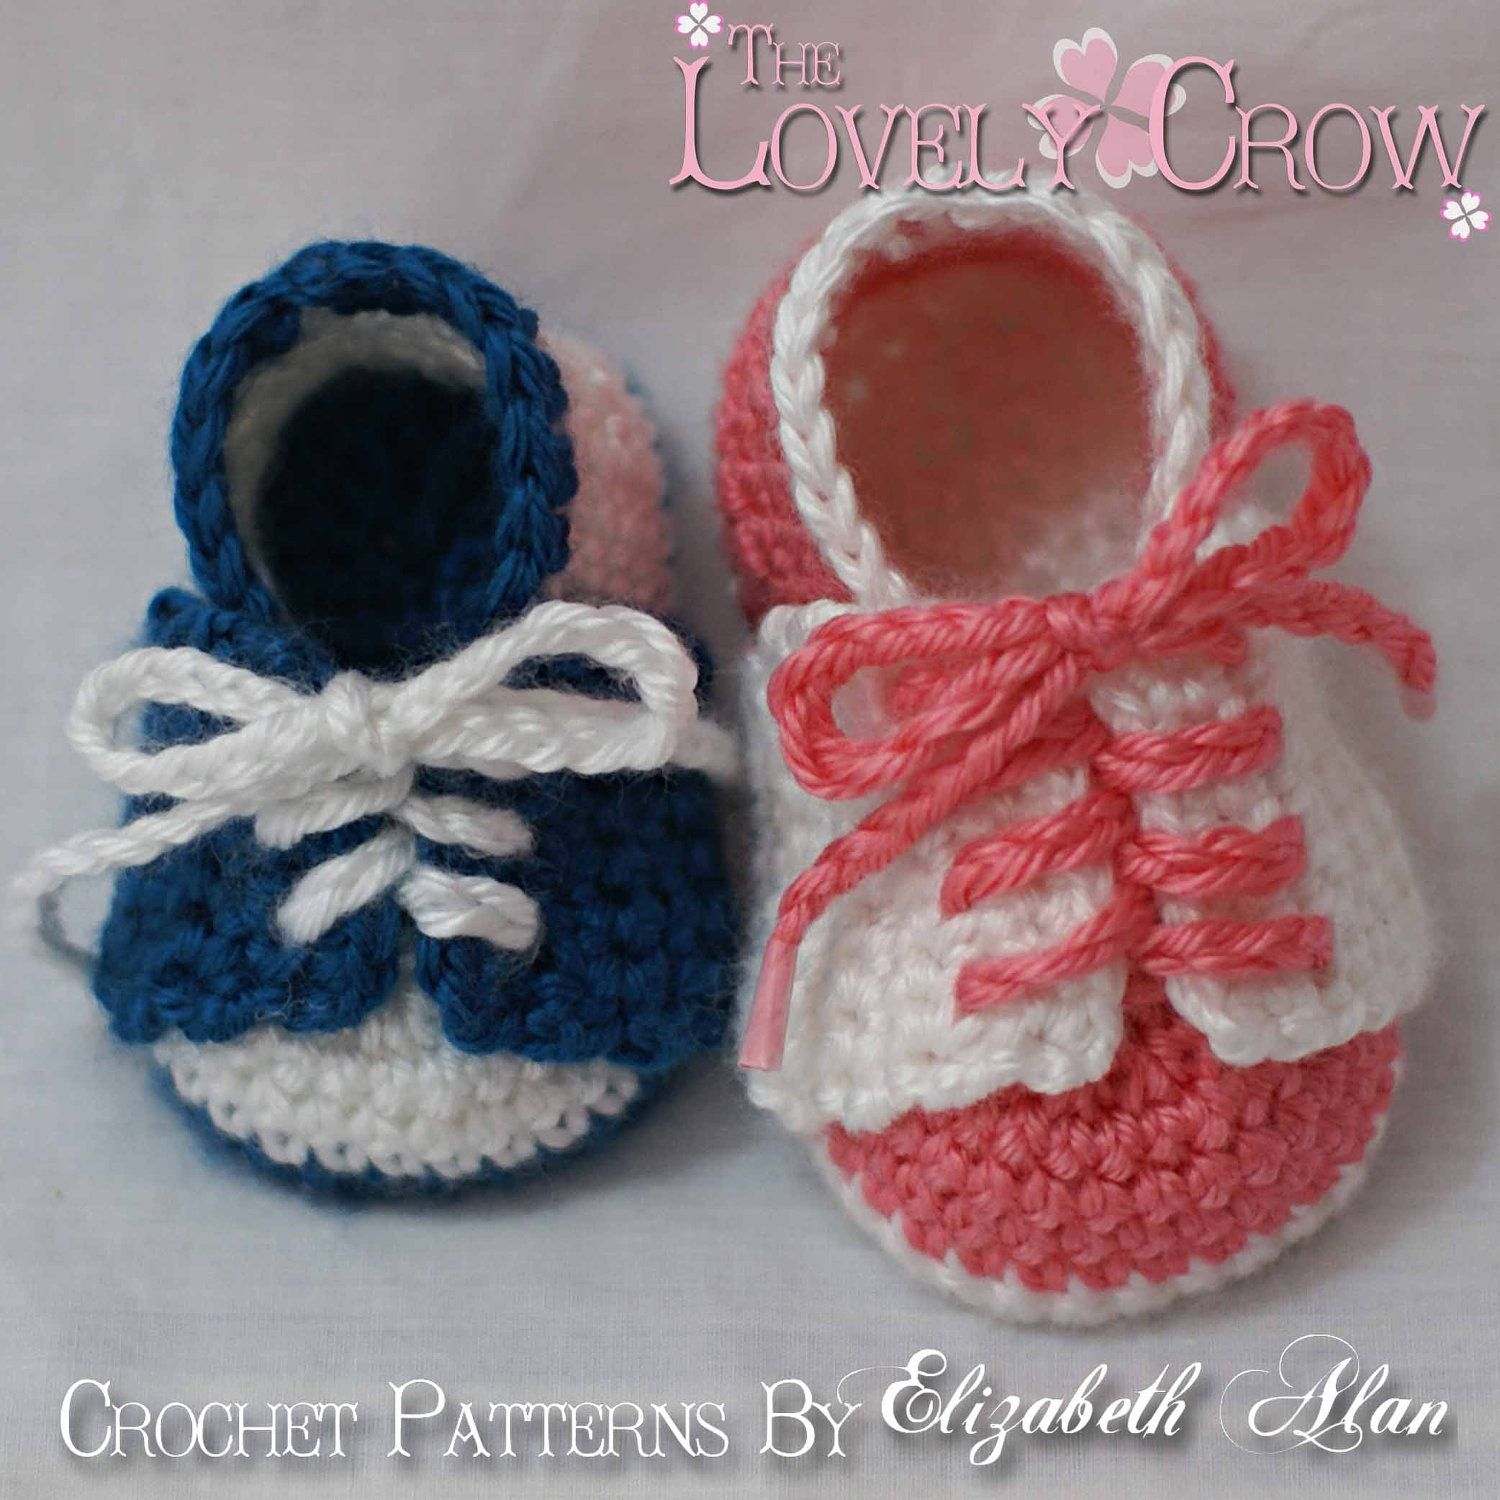 Free crochet baby bootie patterns baby shoes crochet pattern for free crochet baby bootie patterns baby shoes crochet pattern for little sport by thelovelycrow bankloansurffo Image collections